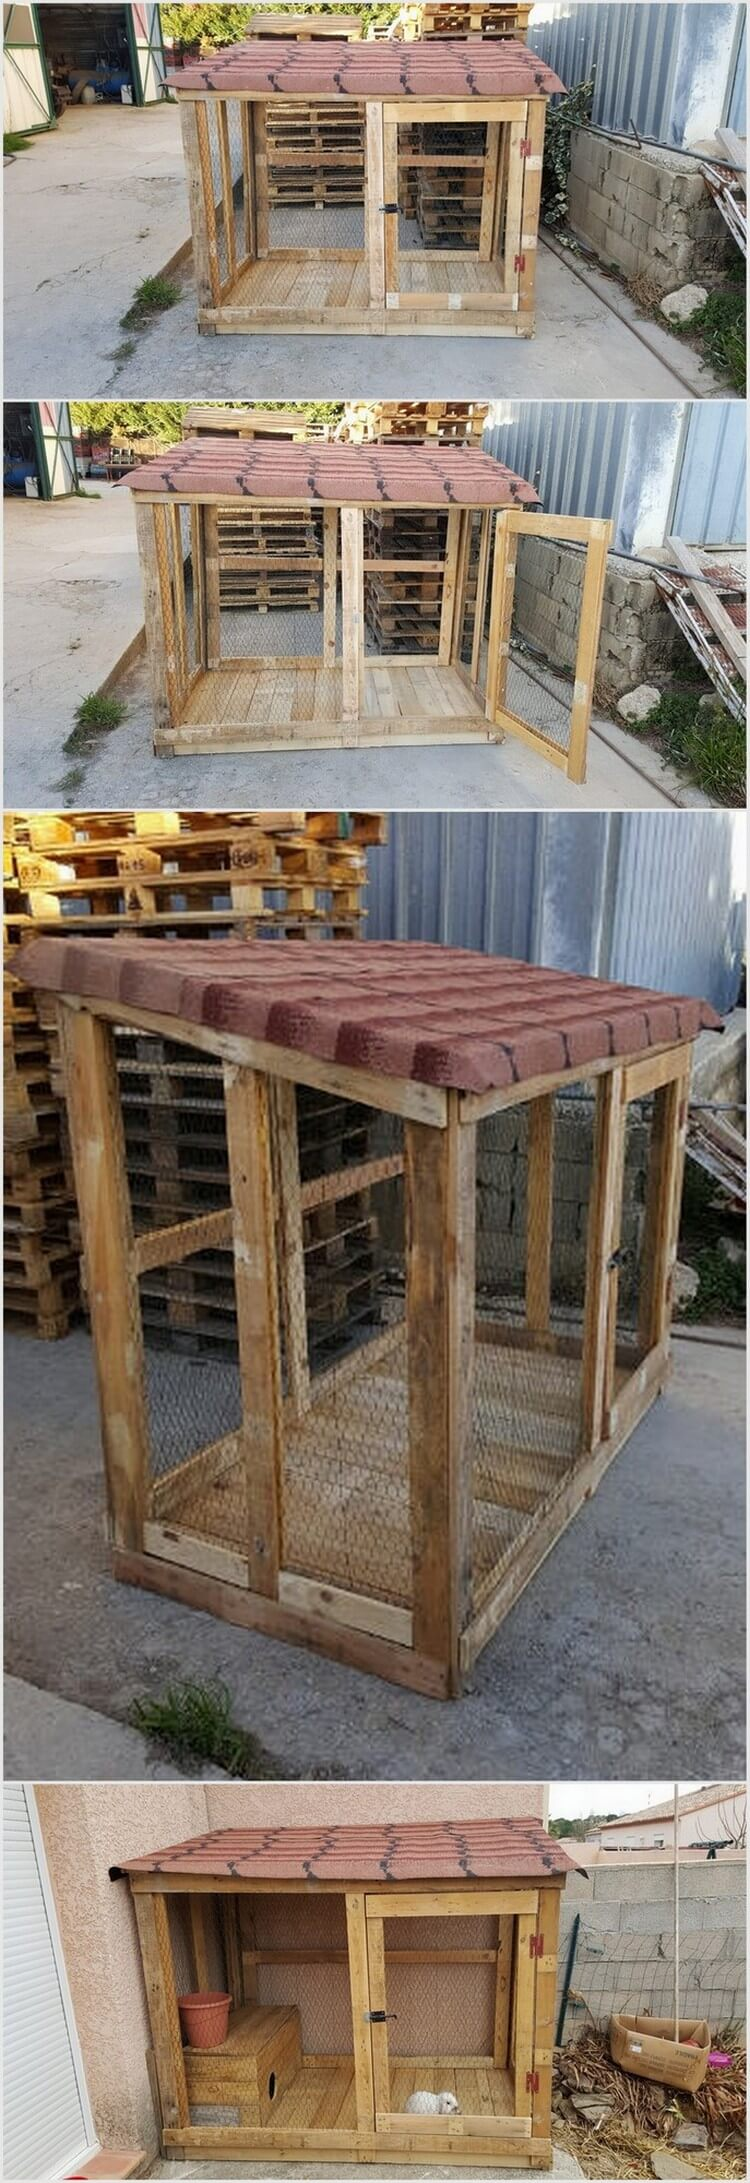 15 cool ideas for wood pallet recycling pallet wood Chicken coop from pallet wood